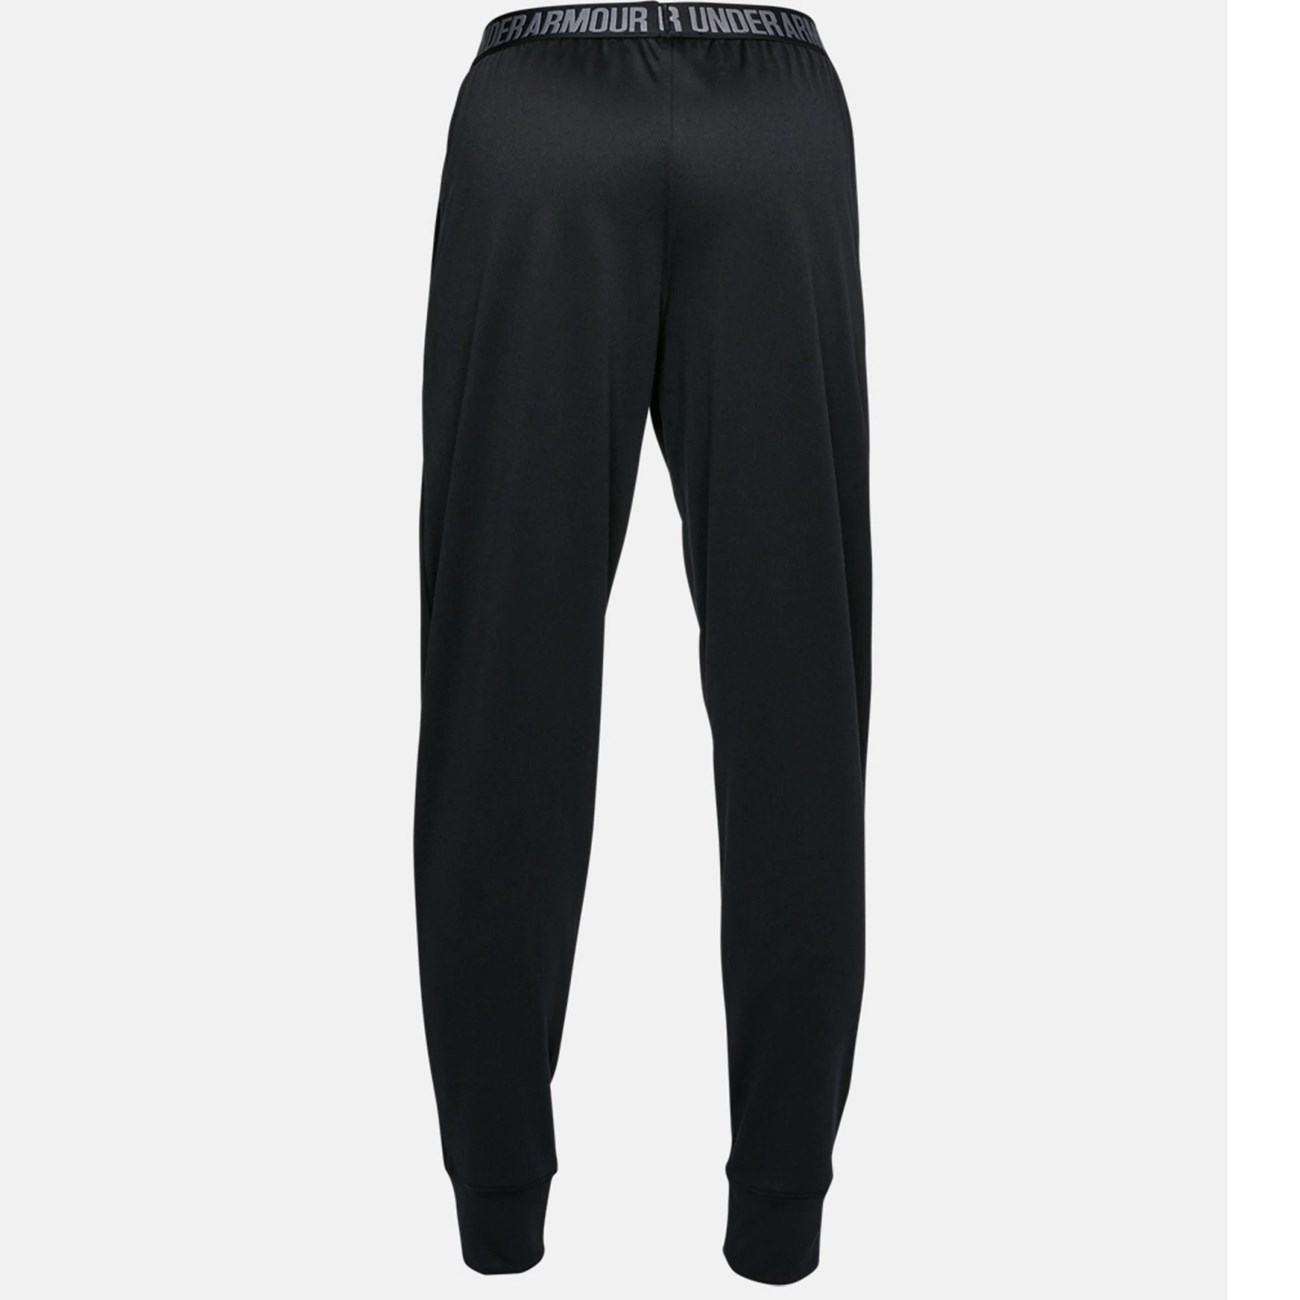 cac489349913 UNDER ARMOUR Play Up Pant Solid PANT   Γυναικεία Παντελόνια Φόρμας ...